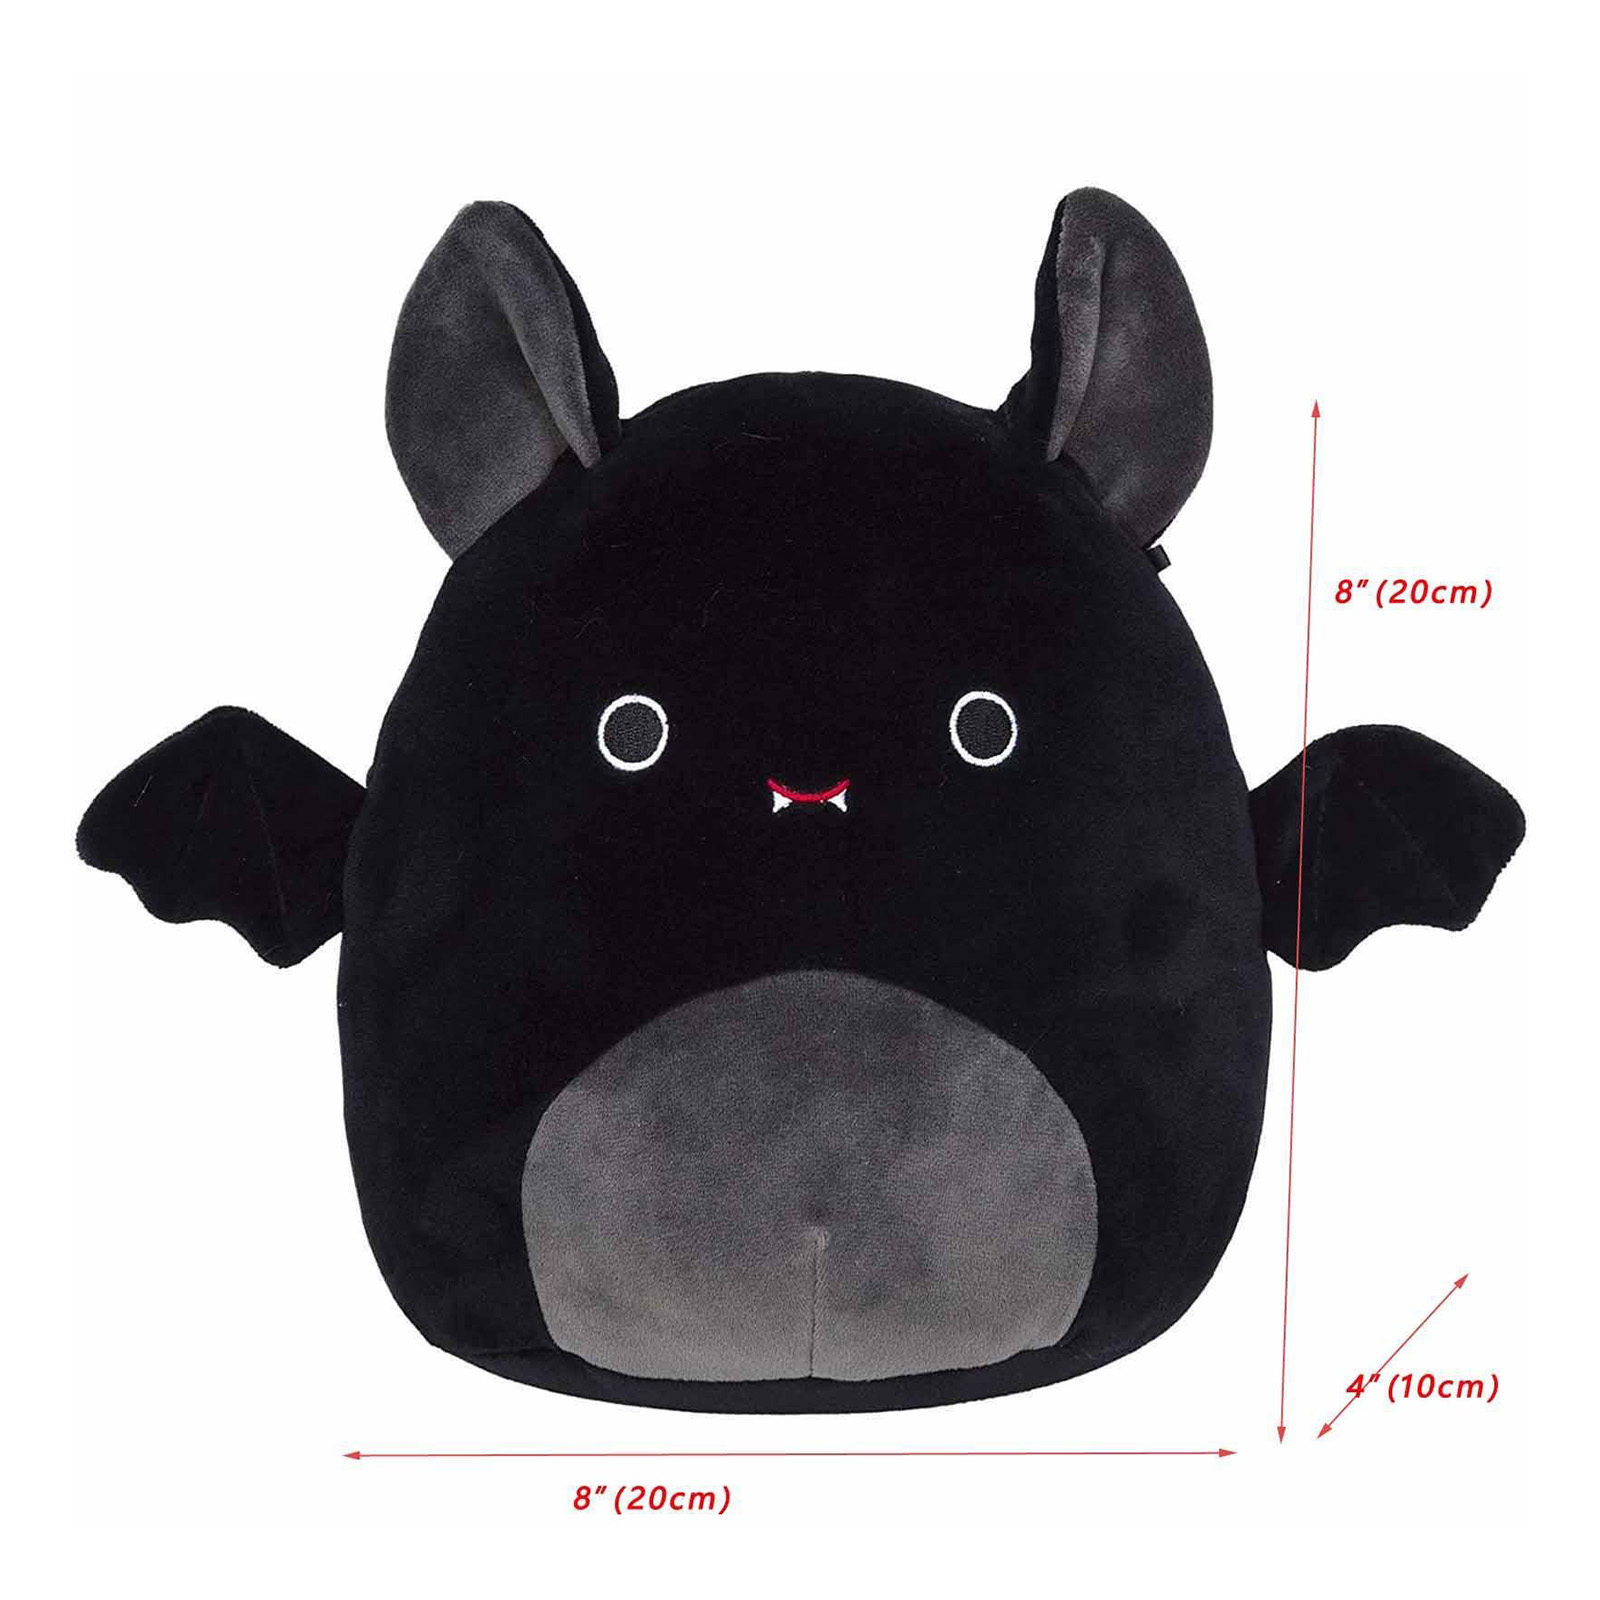 8″ Halloween Plush Bat Toy Christmas Holiday Birthday Gift for Kids